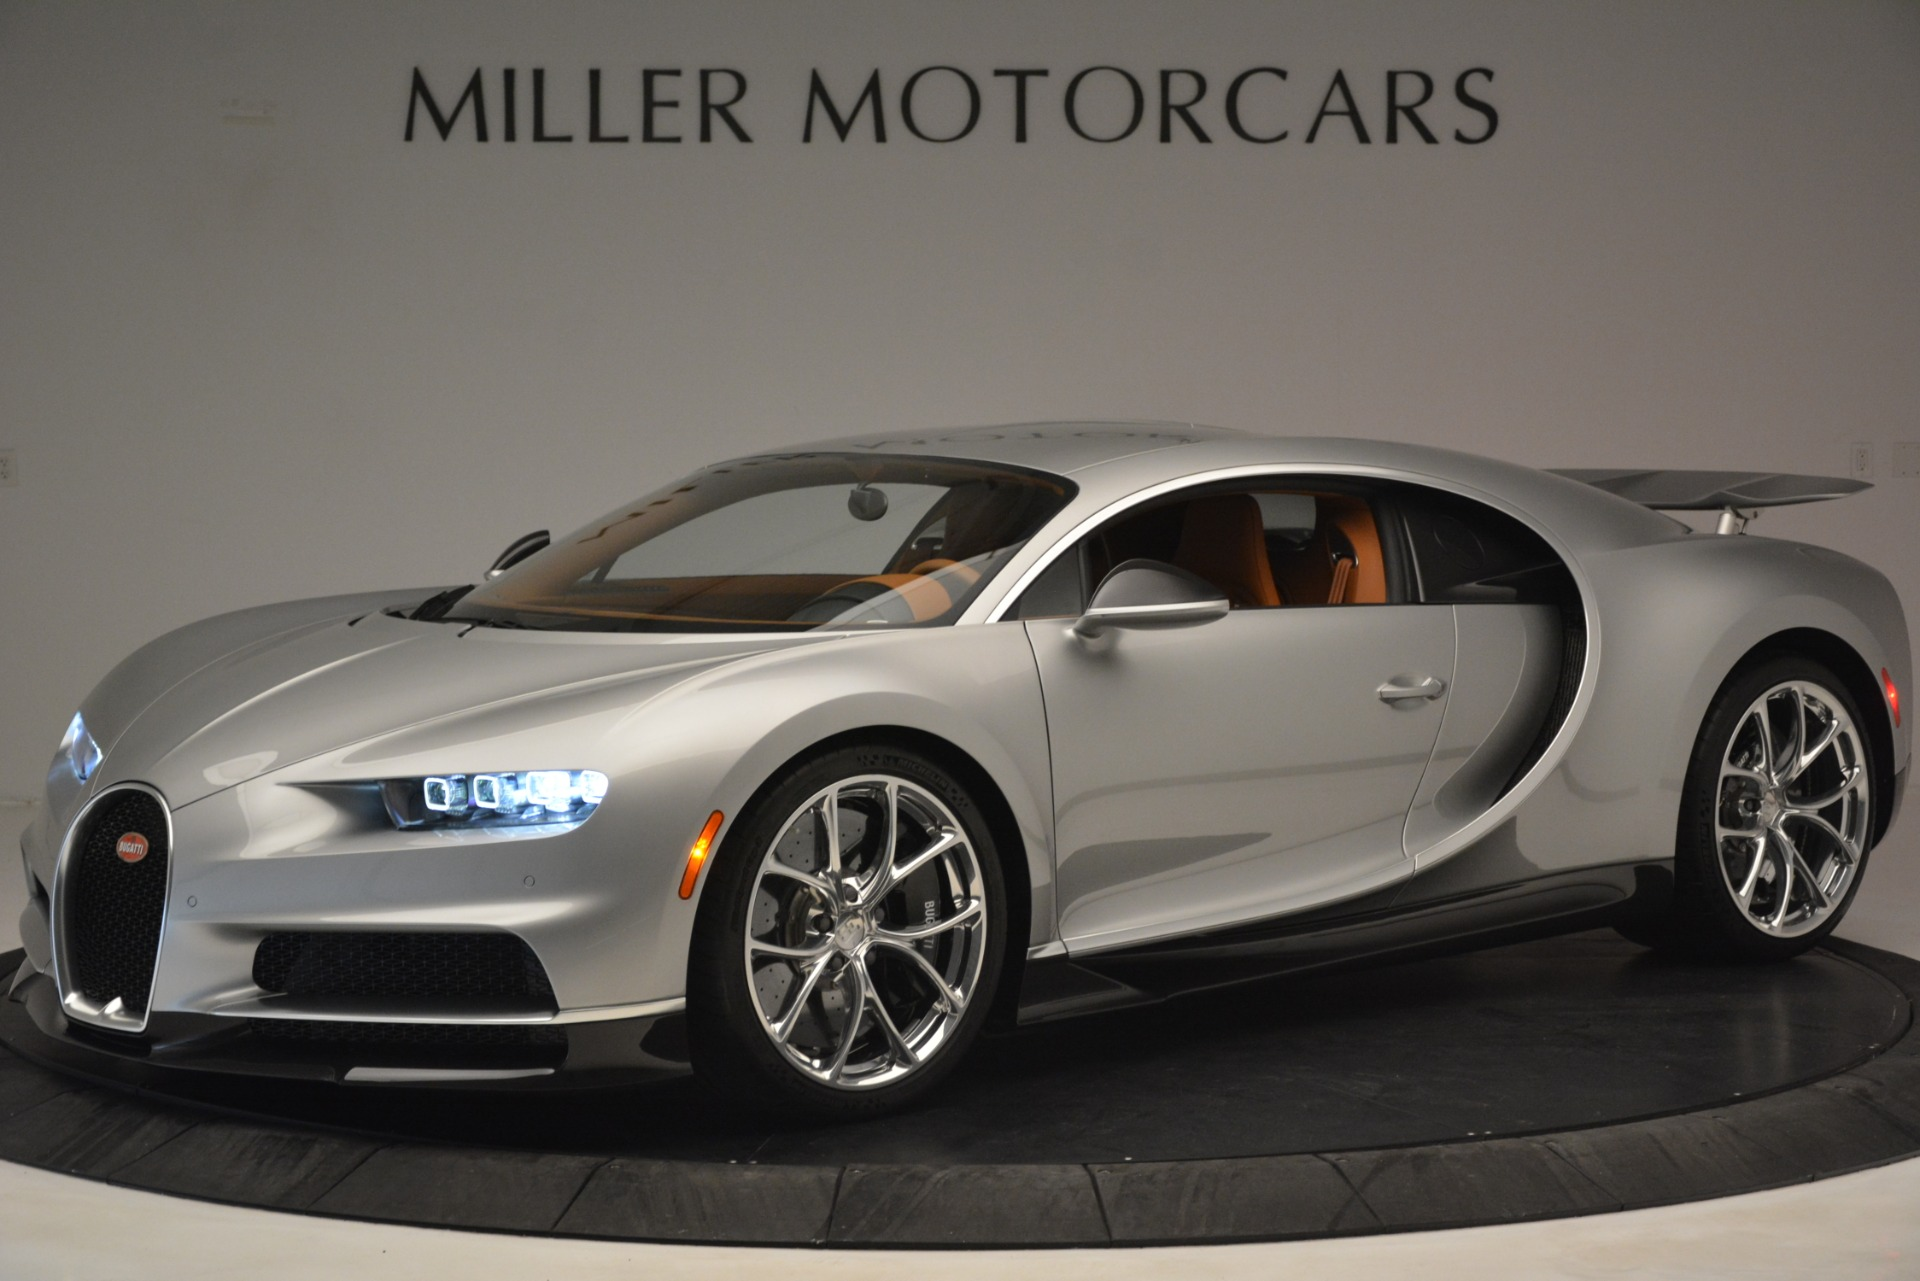 Used 2019 Bugatti Chiron for sale $3,100,000 at Rolls-Royce Motor Cars Greenwich in Greenwich CT 06830 1